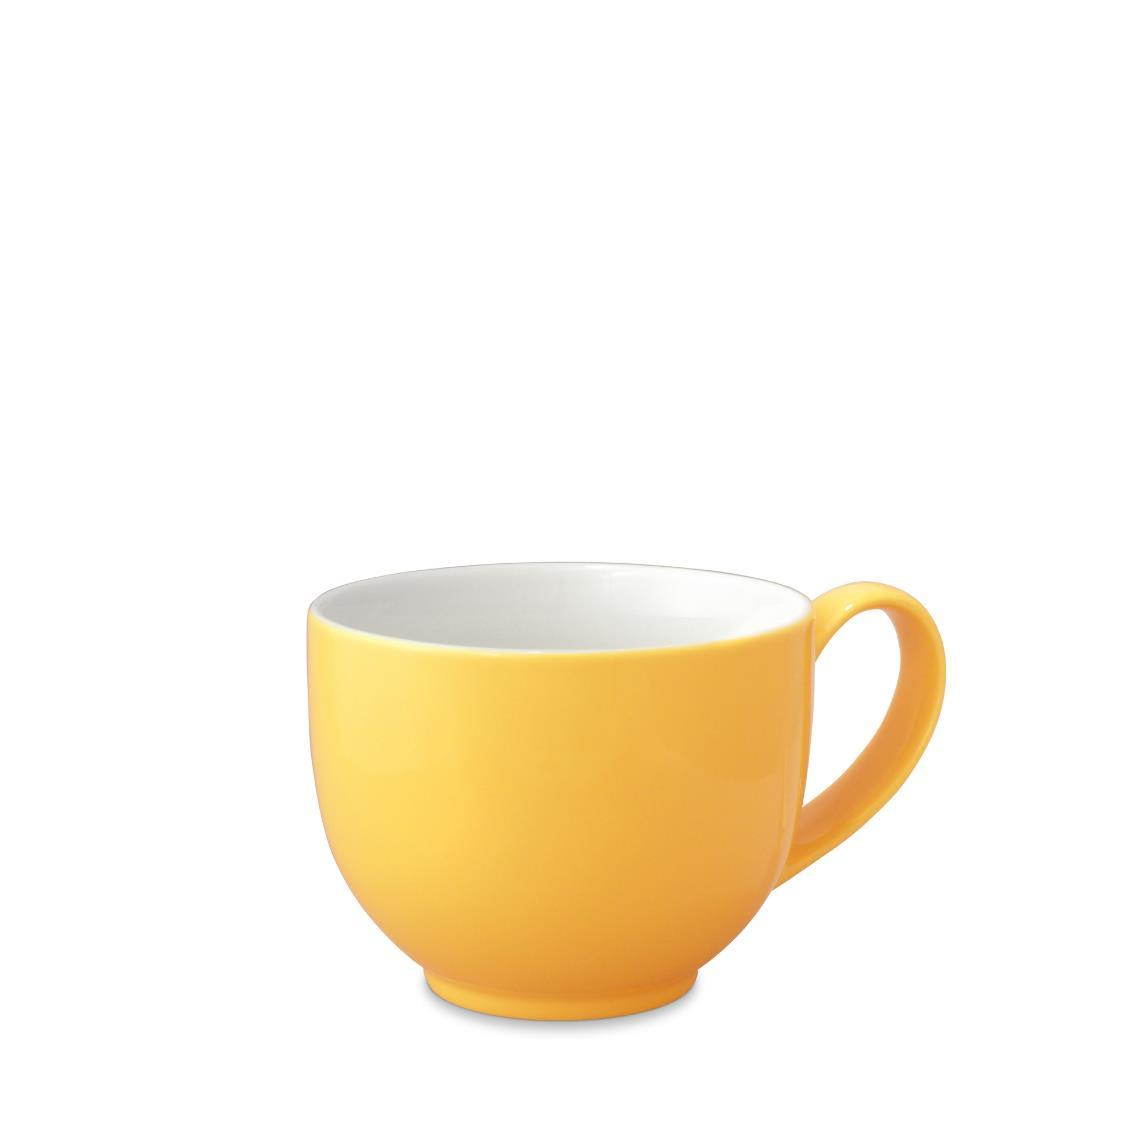 Q Tea Cup with Handle 295ml FL521-MND